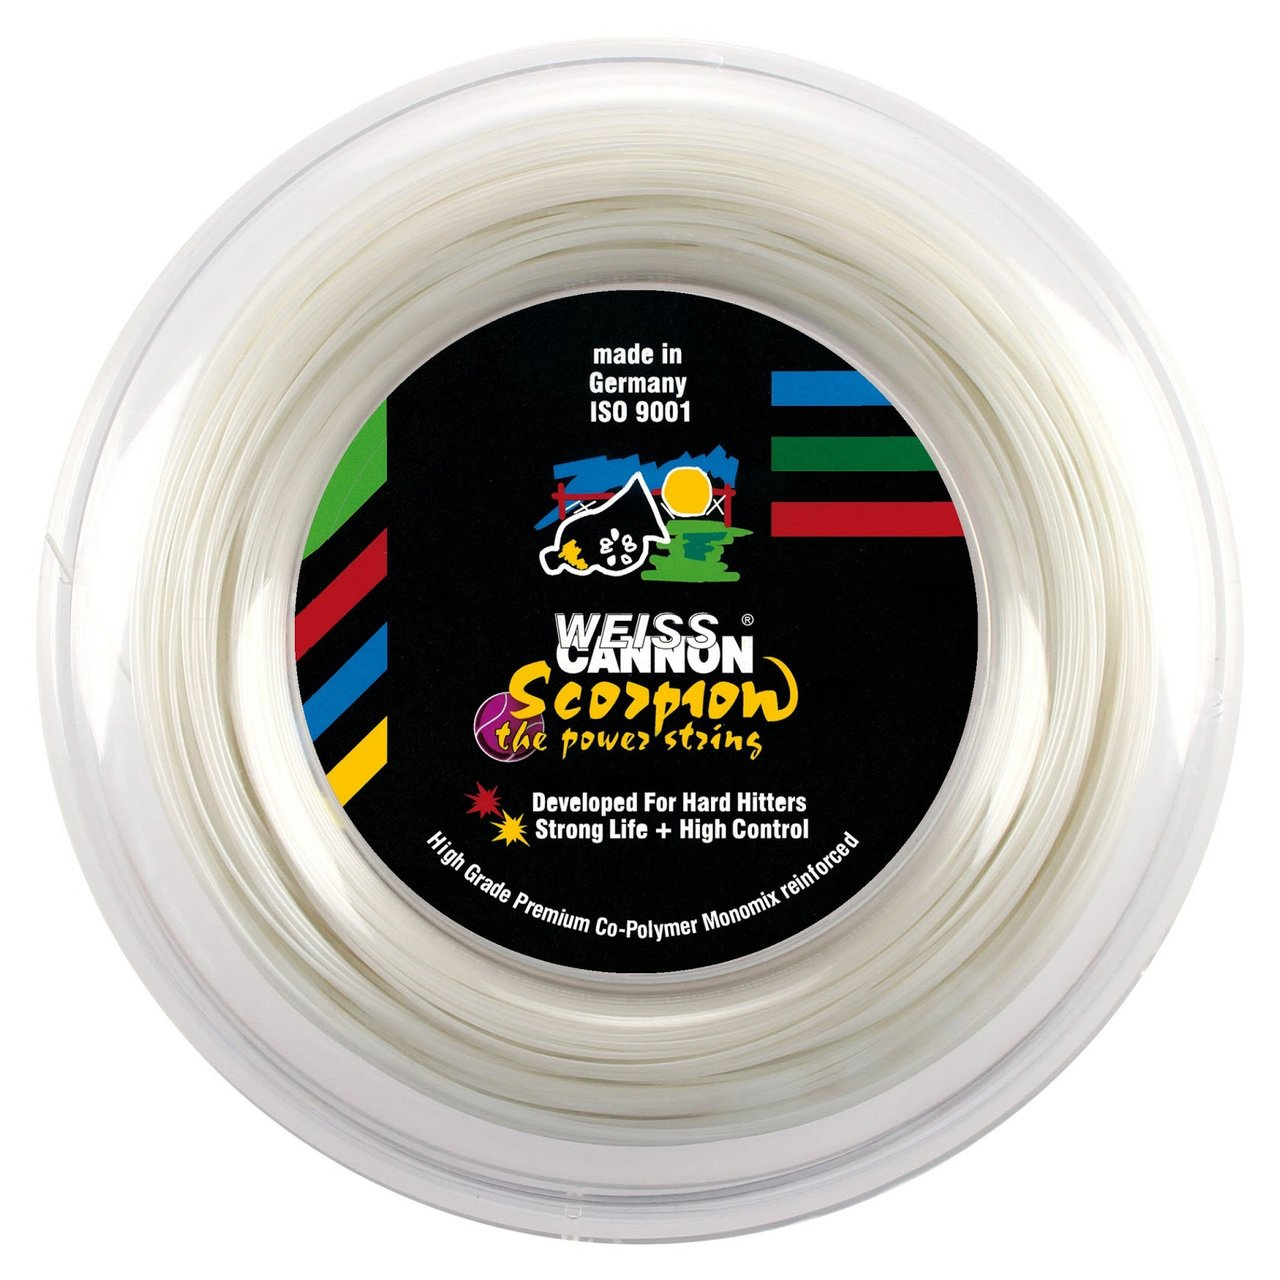 Weiss Cannon Scorpion Tennis String - 1.33mm/16 (White) 660ft - 200m Reel - The Power String